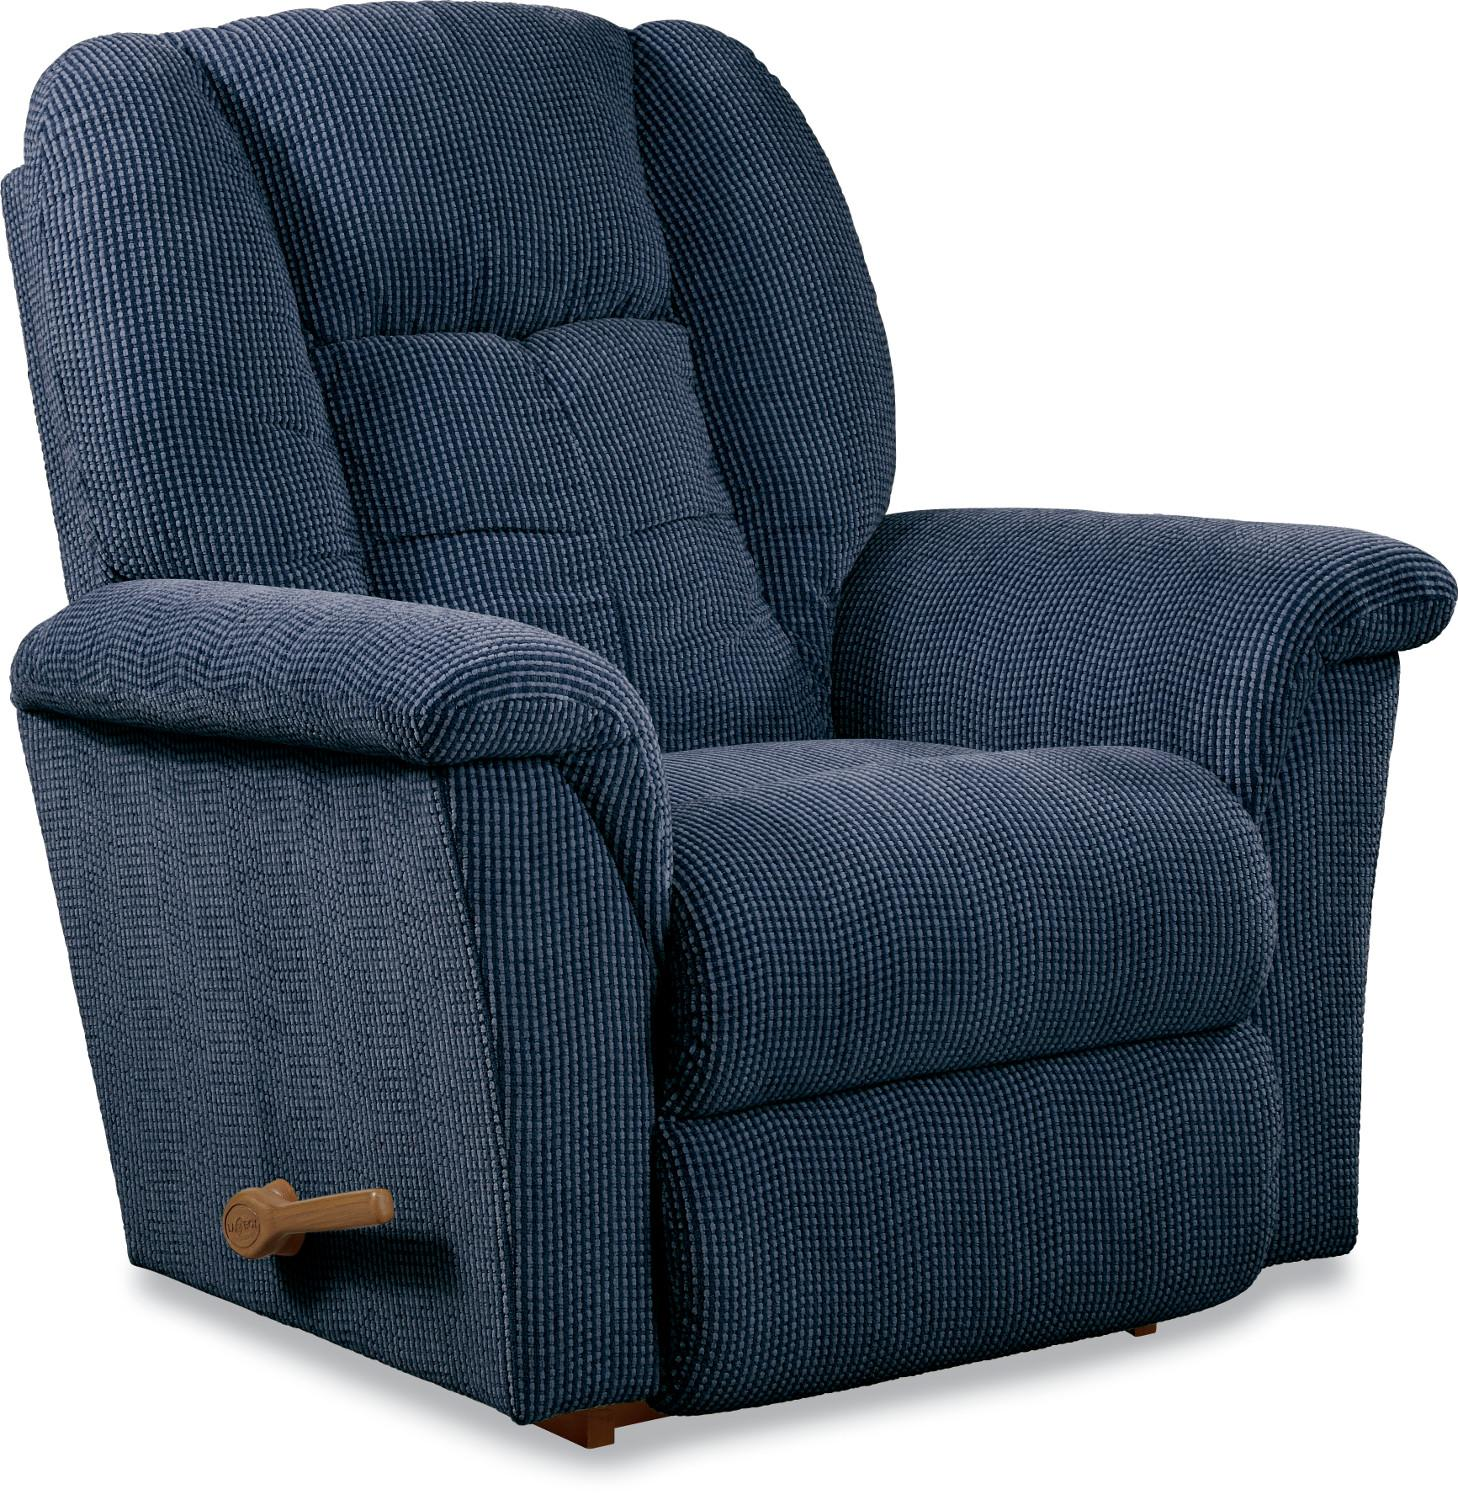 Jasper RECLINA ROCKER Recliner by La Z Boy